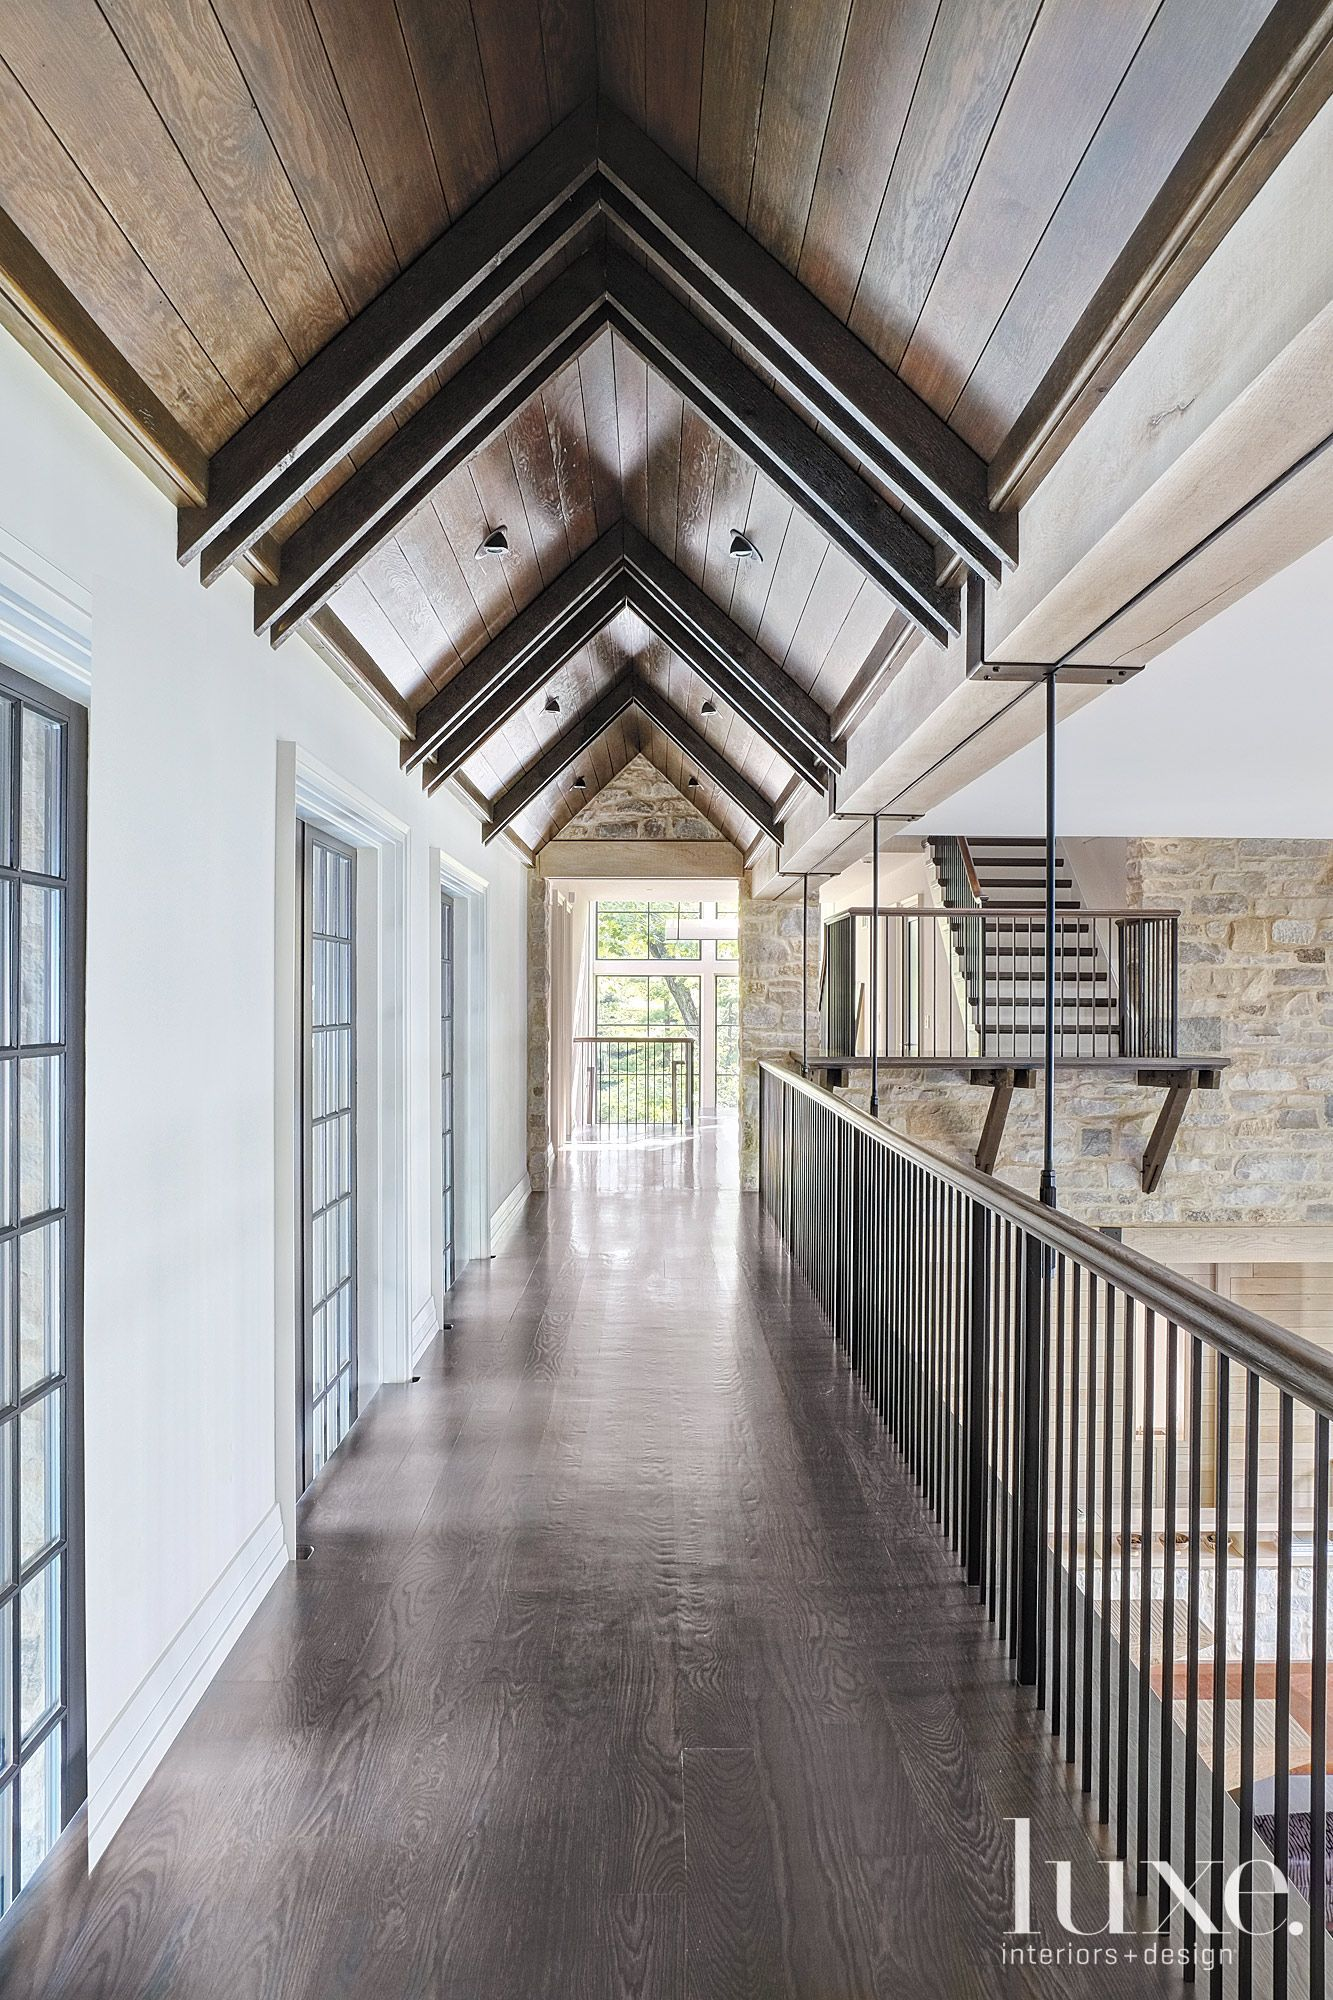 Corridor Roof Design: Pin By Tricia Willis On Details